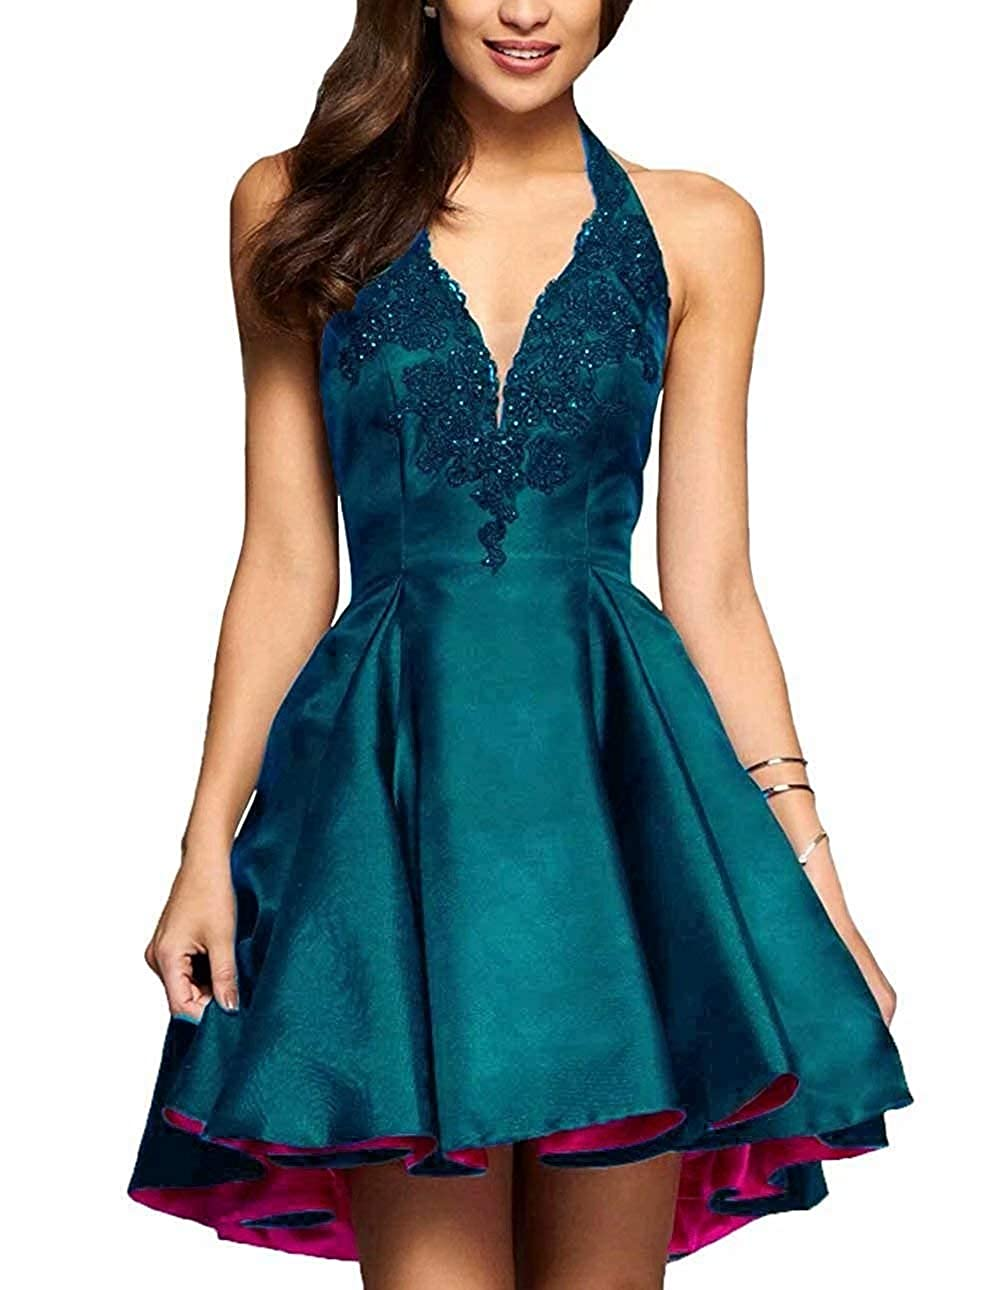 Teal Green Ubride 2019 Short A line Beaded Lace Applique Prom Dress Satin Halter Homecoming Dress Pockets